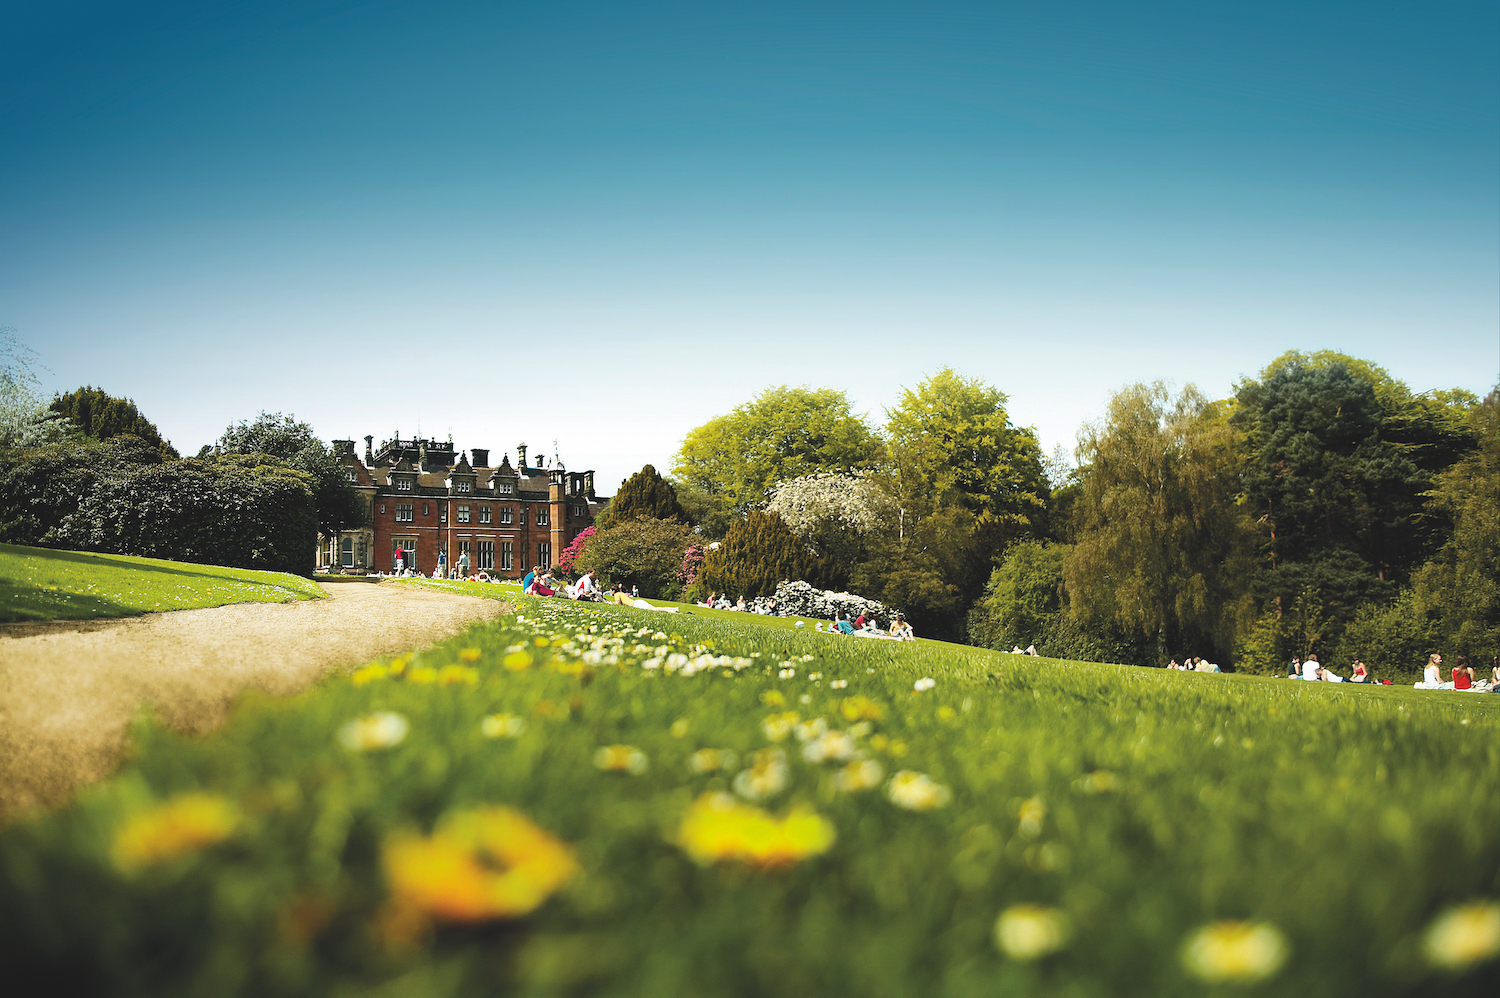 Campus carbon emissions: Keele smashes sustainability target